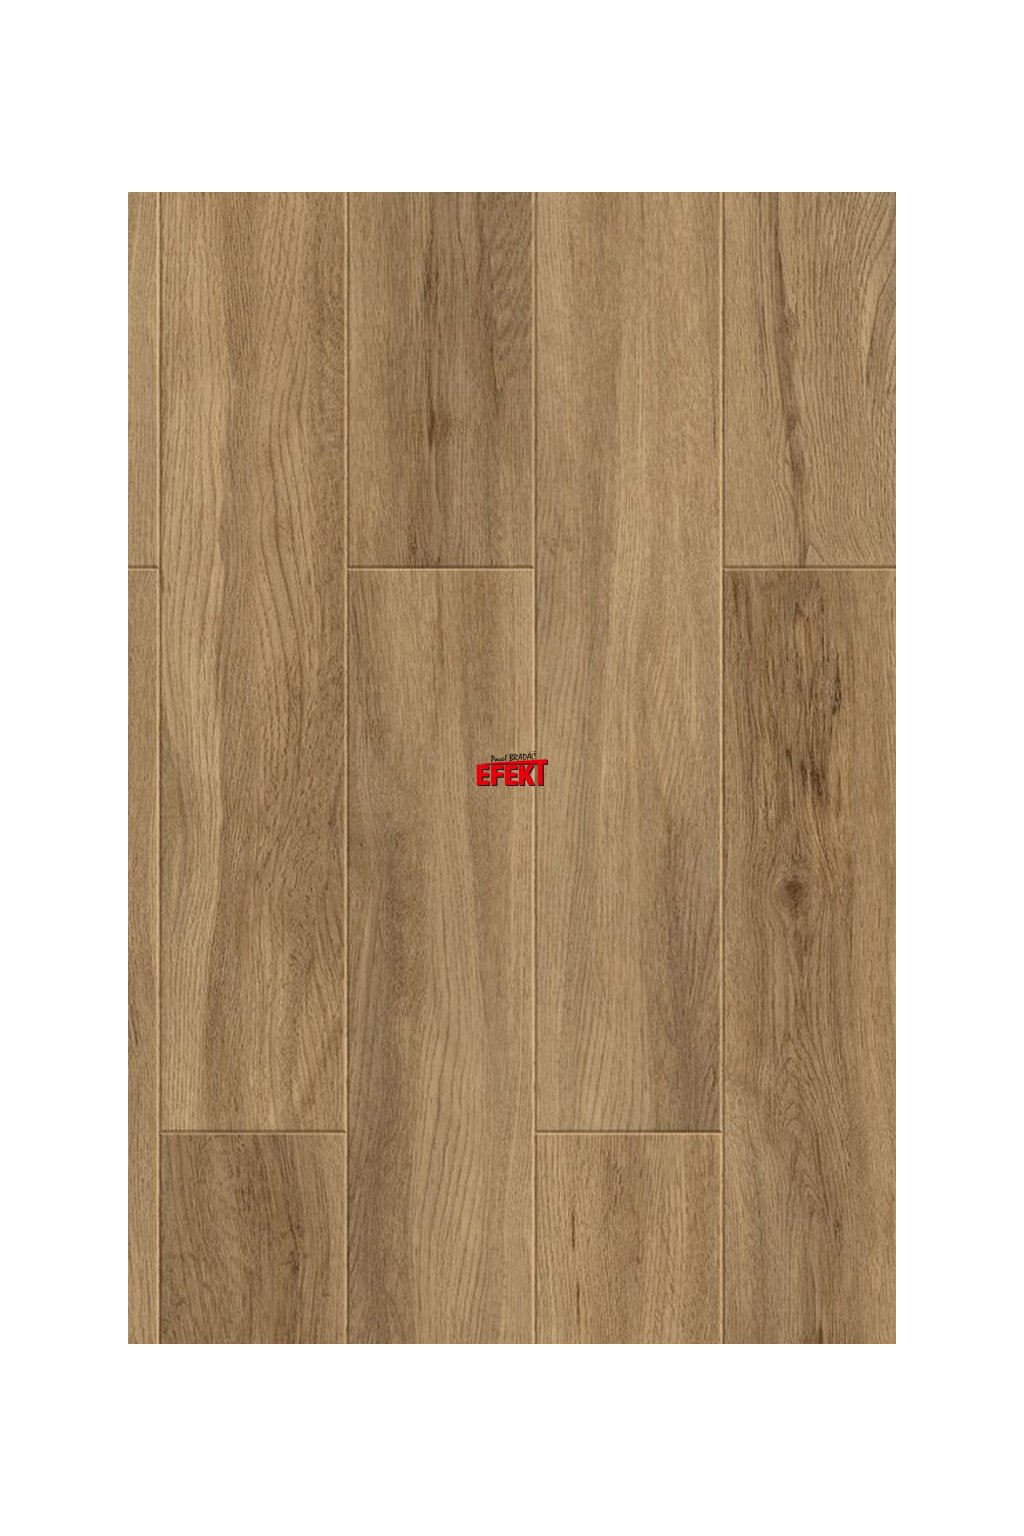 Gerflor Clic 30 Quartet